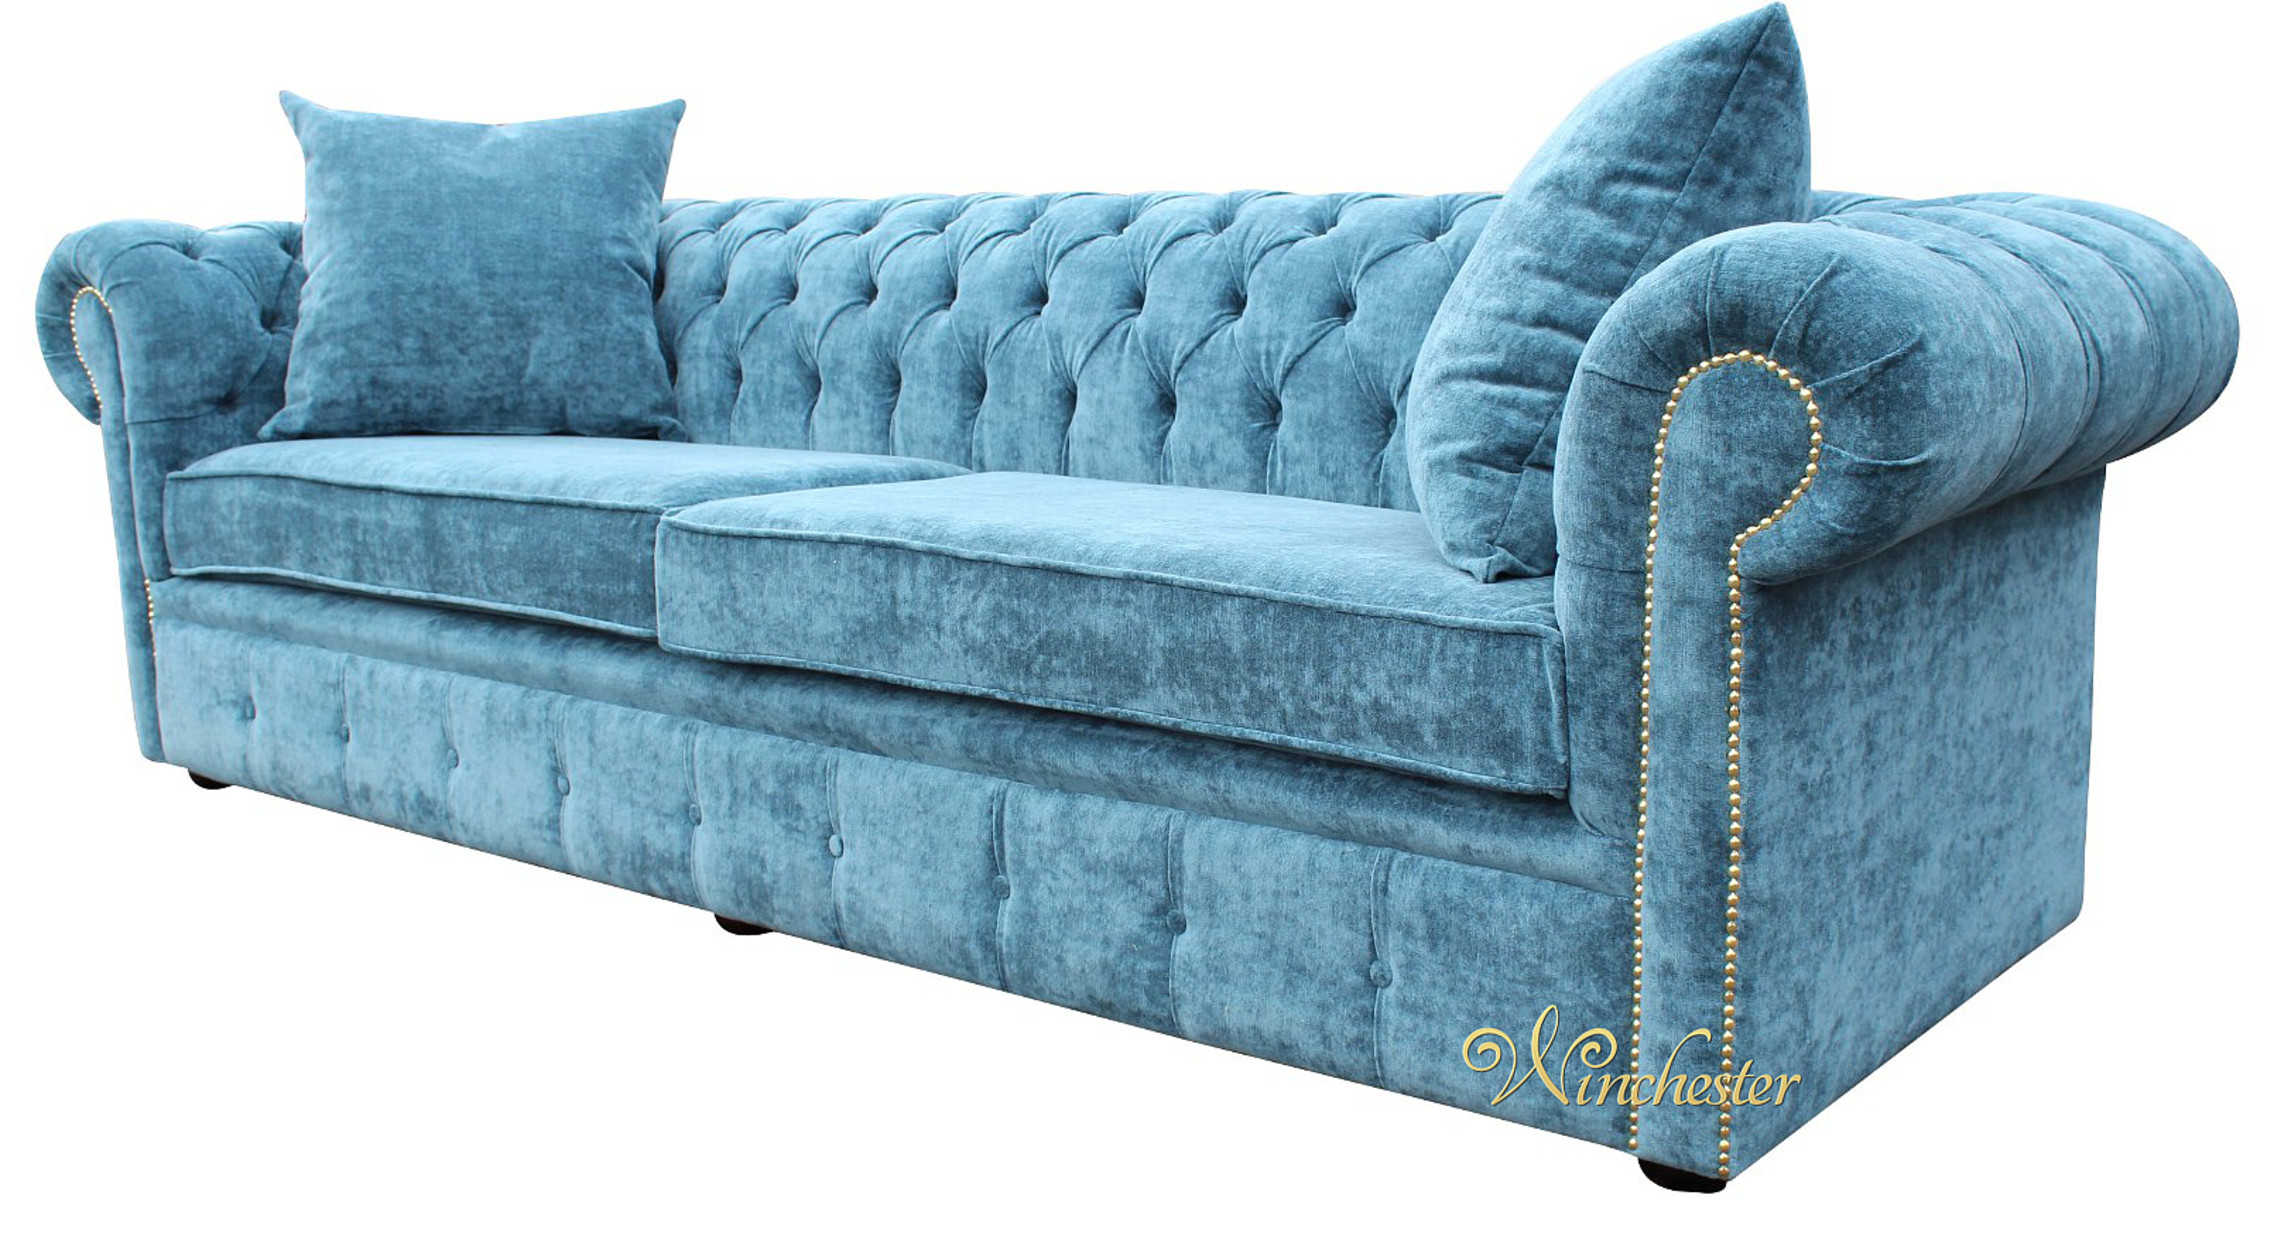 Chesterfield 4 Seater Settee Elegance Teal Velvet Fabric